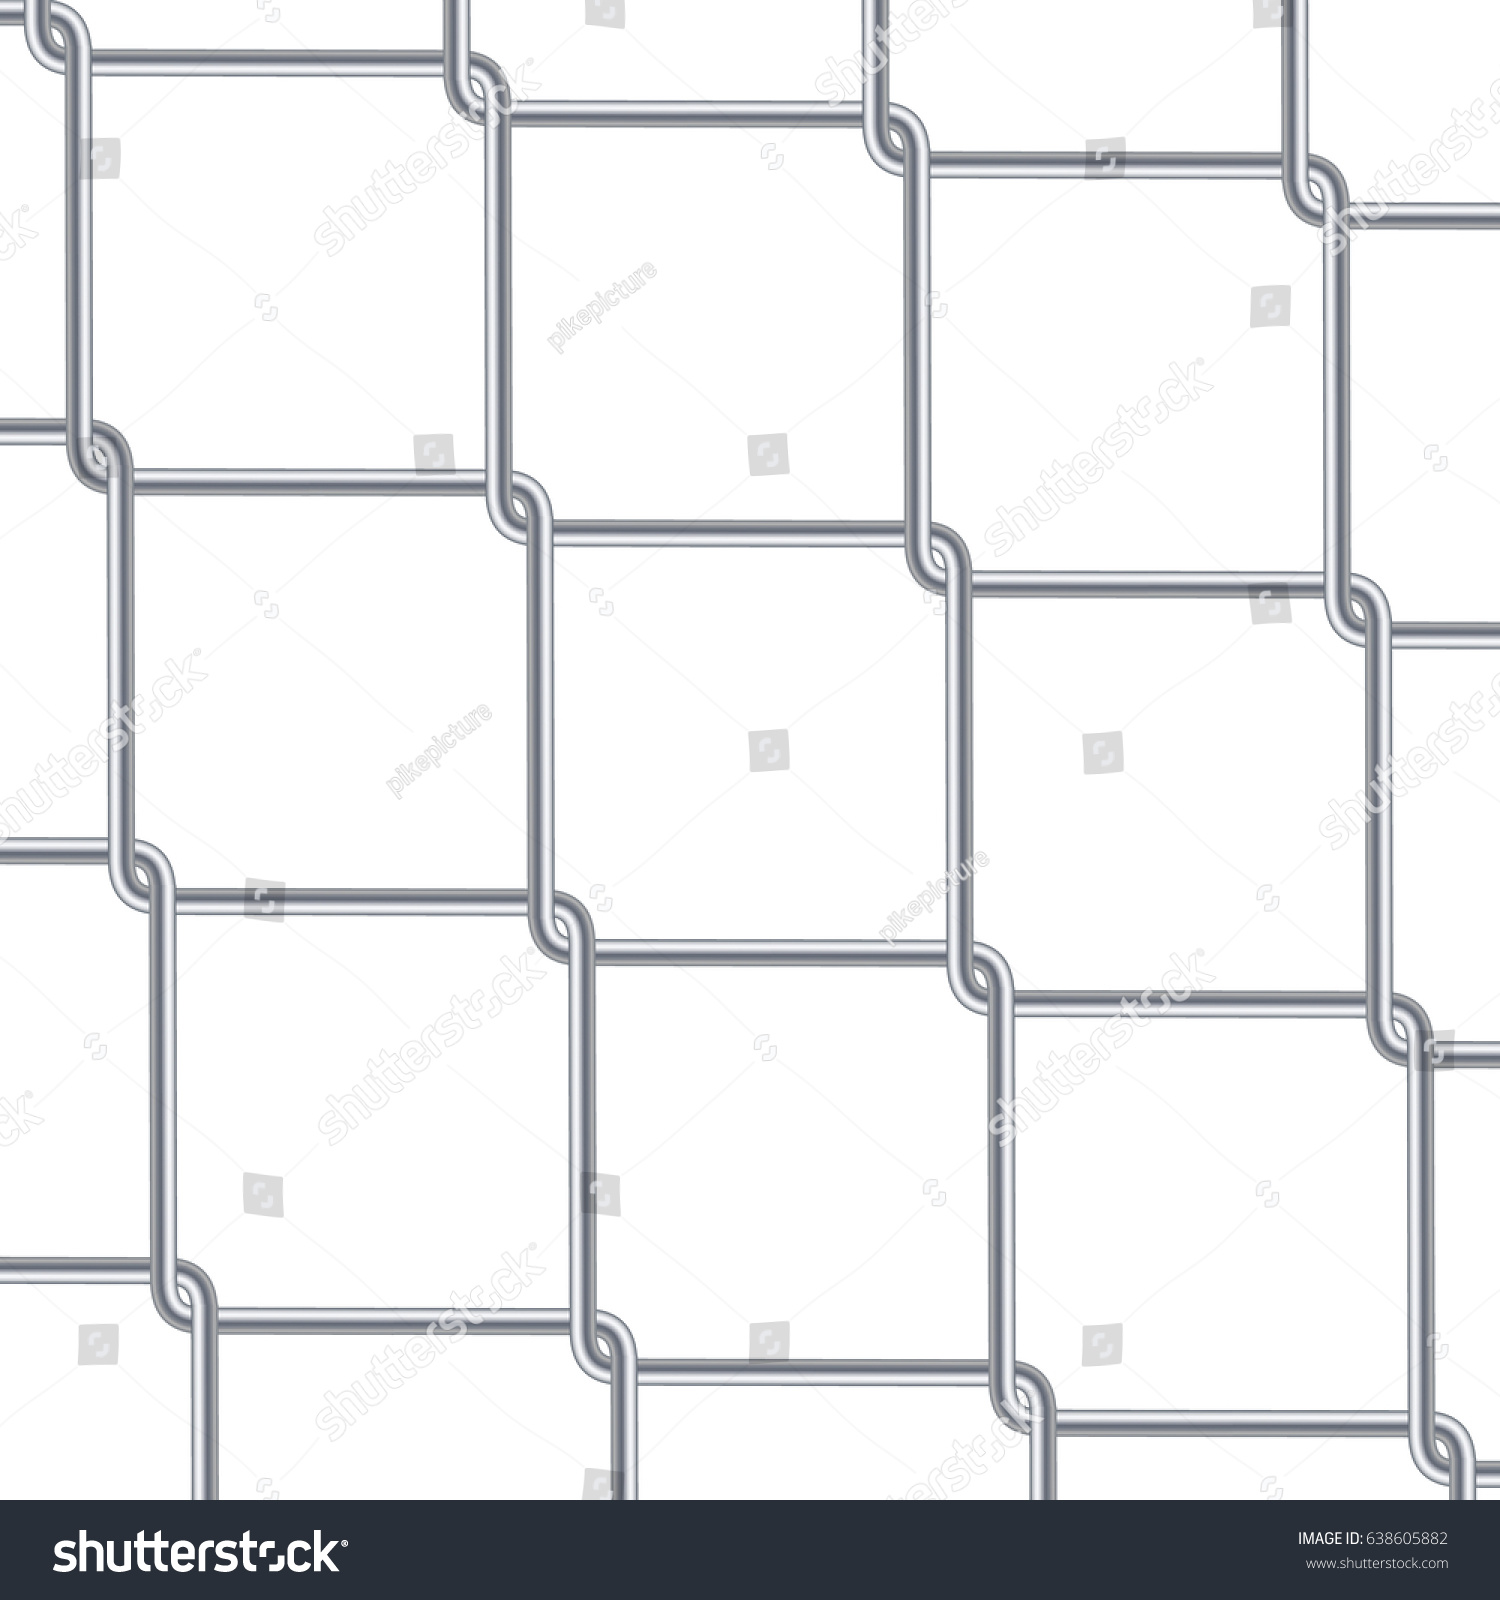 hight resolution of chain link fence background industrial style wallpaper realistic geometric texture steel wire wall